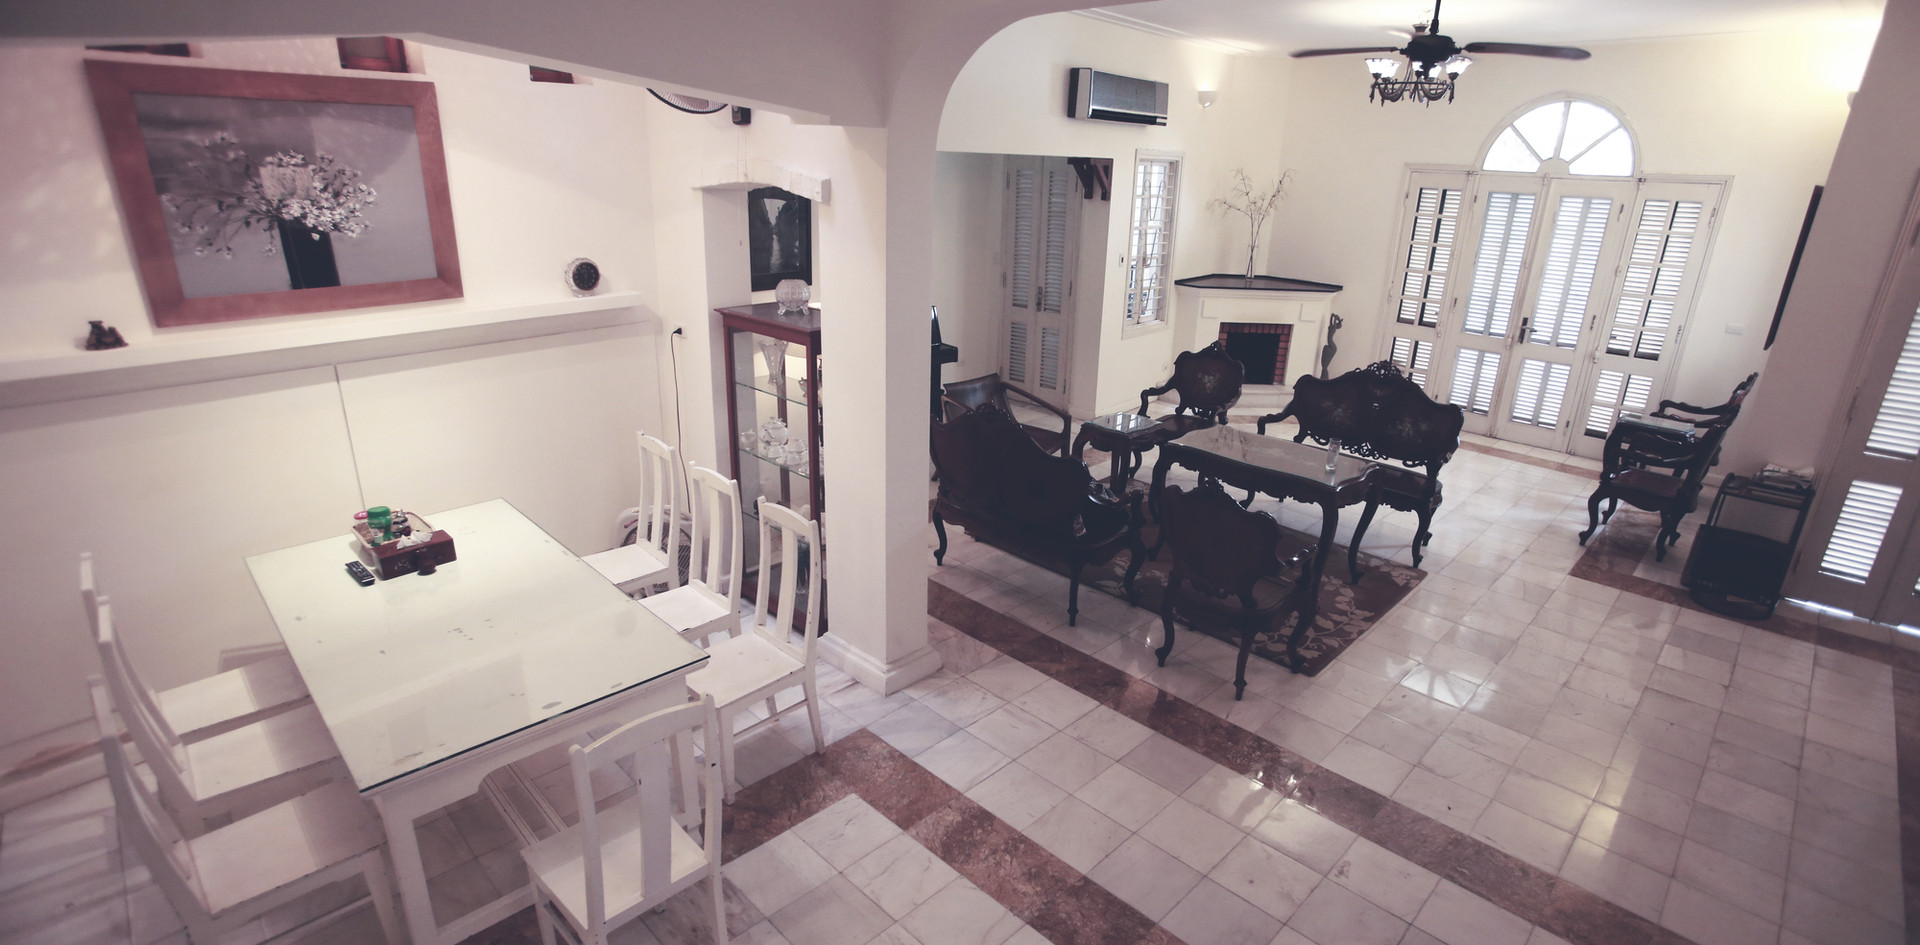 Townhouse dining area